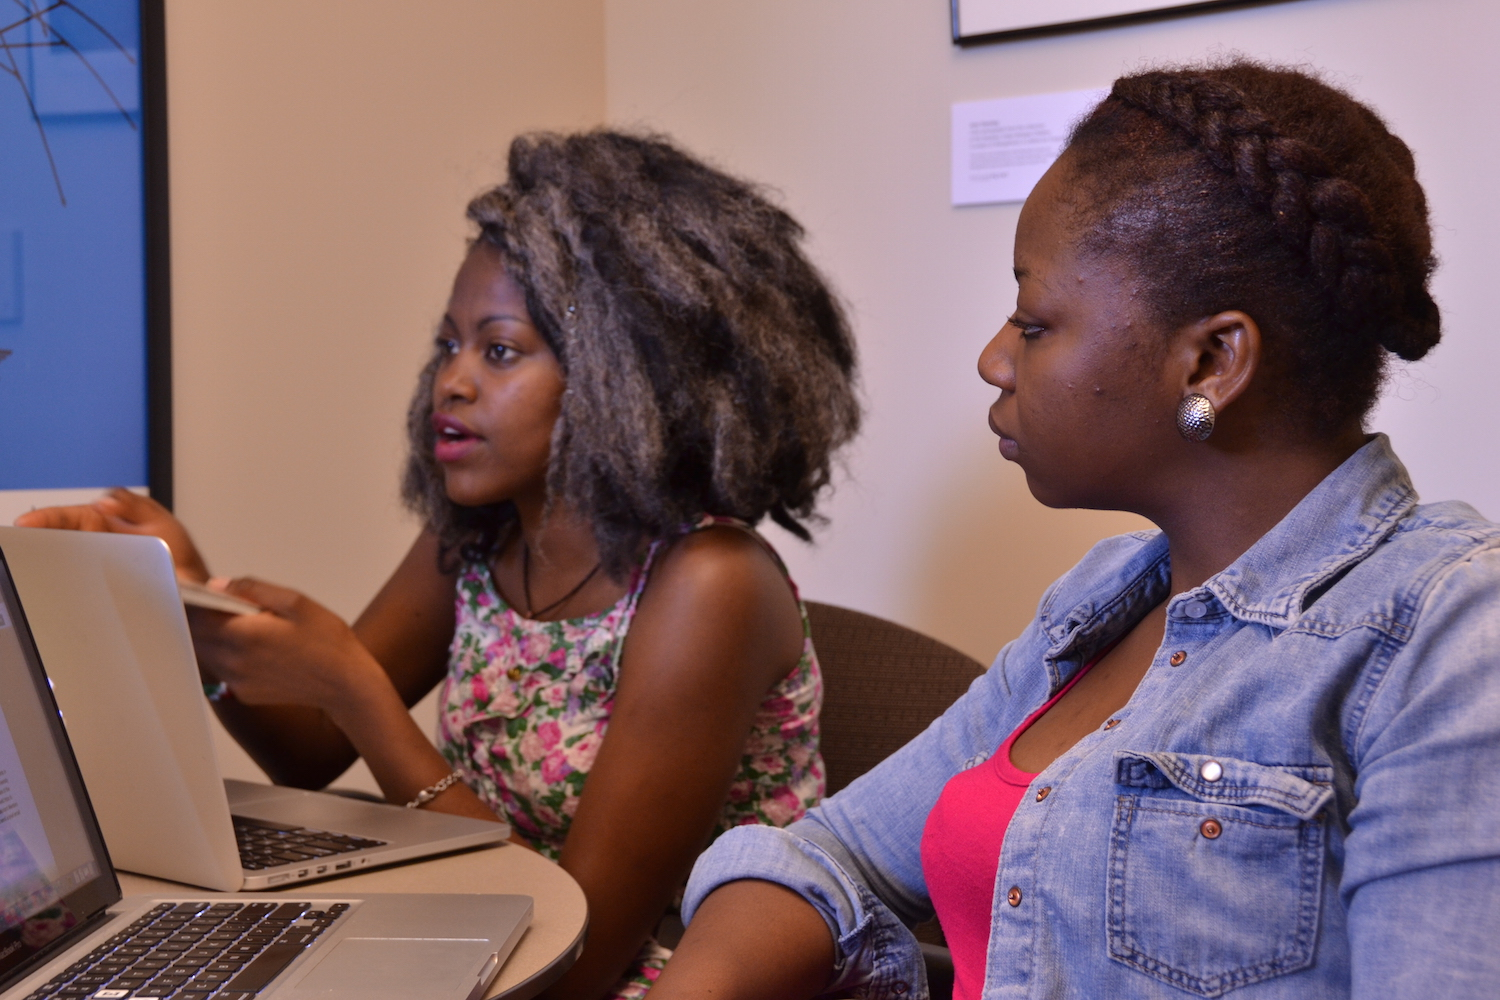 Claudia Kahindi '18, left, and Olayinka Lawal '15 will use a Davis Projects for Peace grant to launch an English education project in Kenya this summer. (Photo by Cynthia Rockwell.)